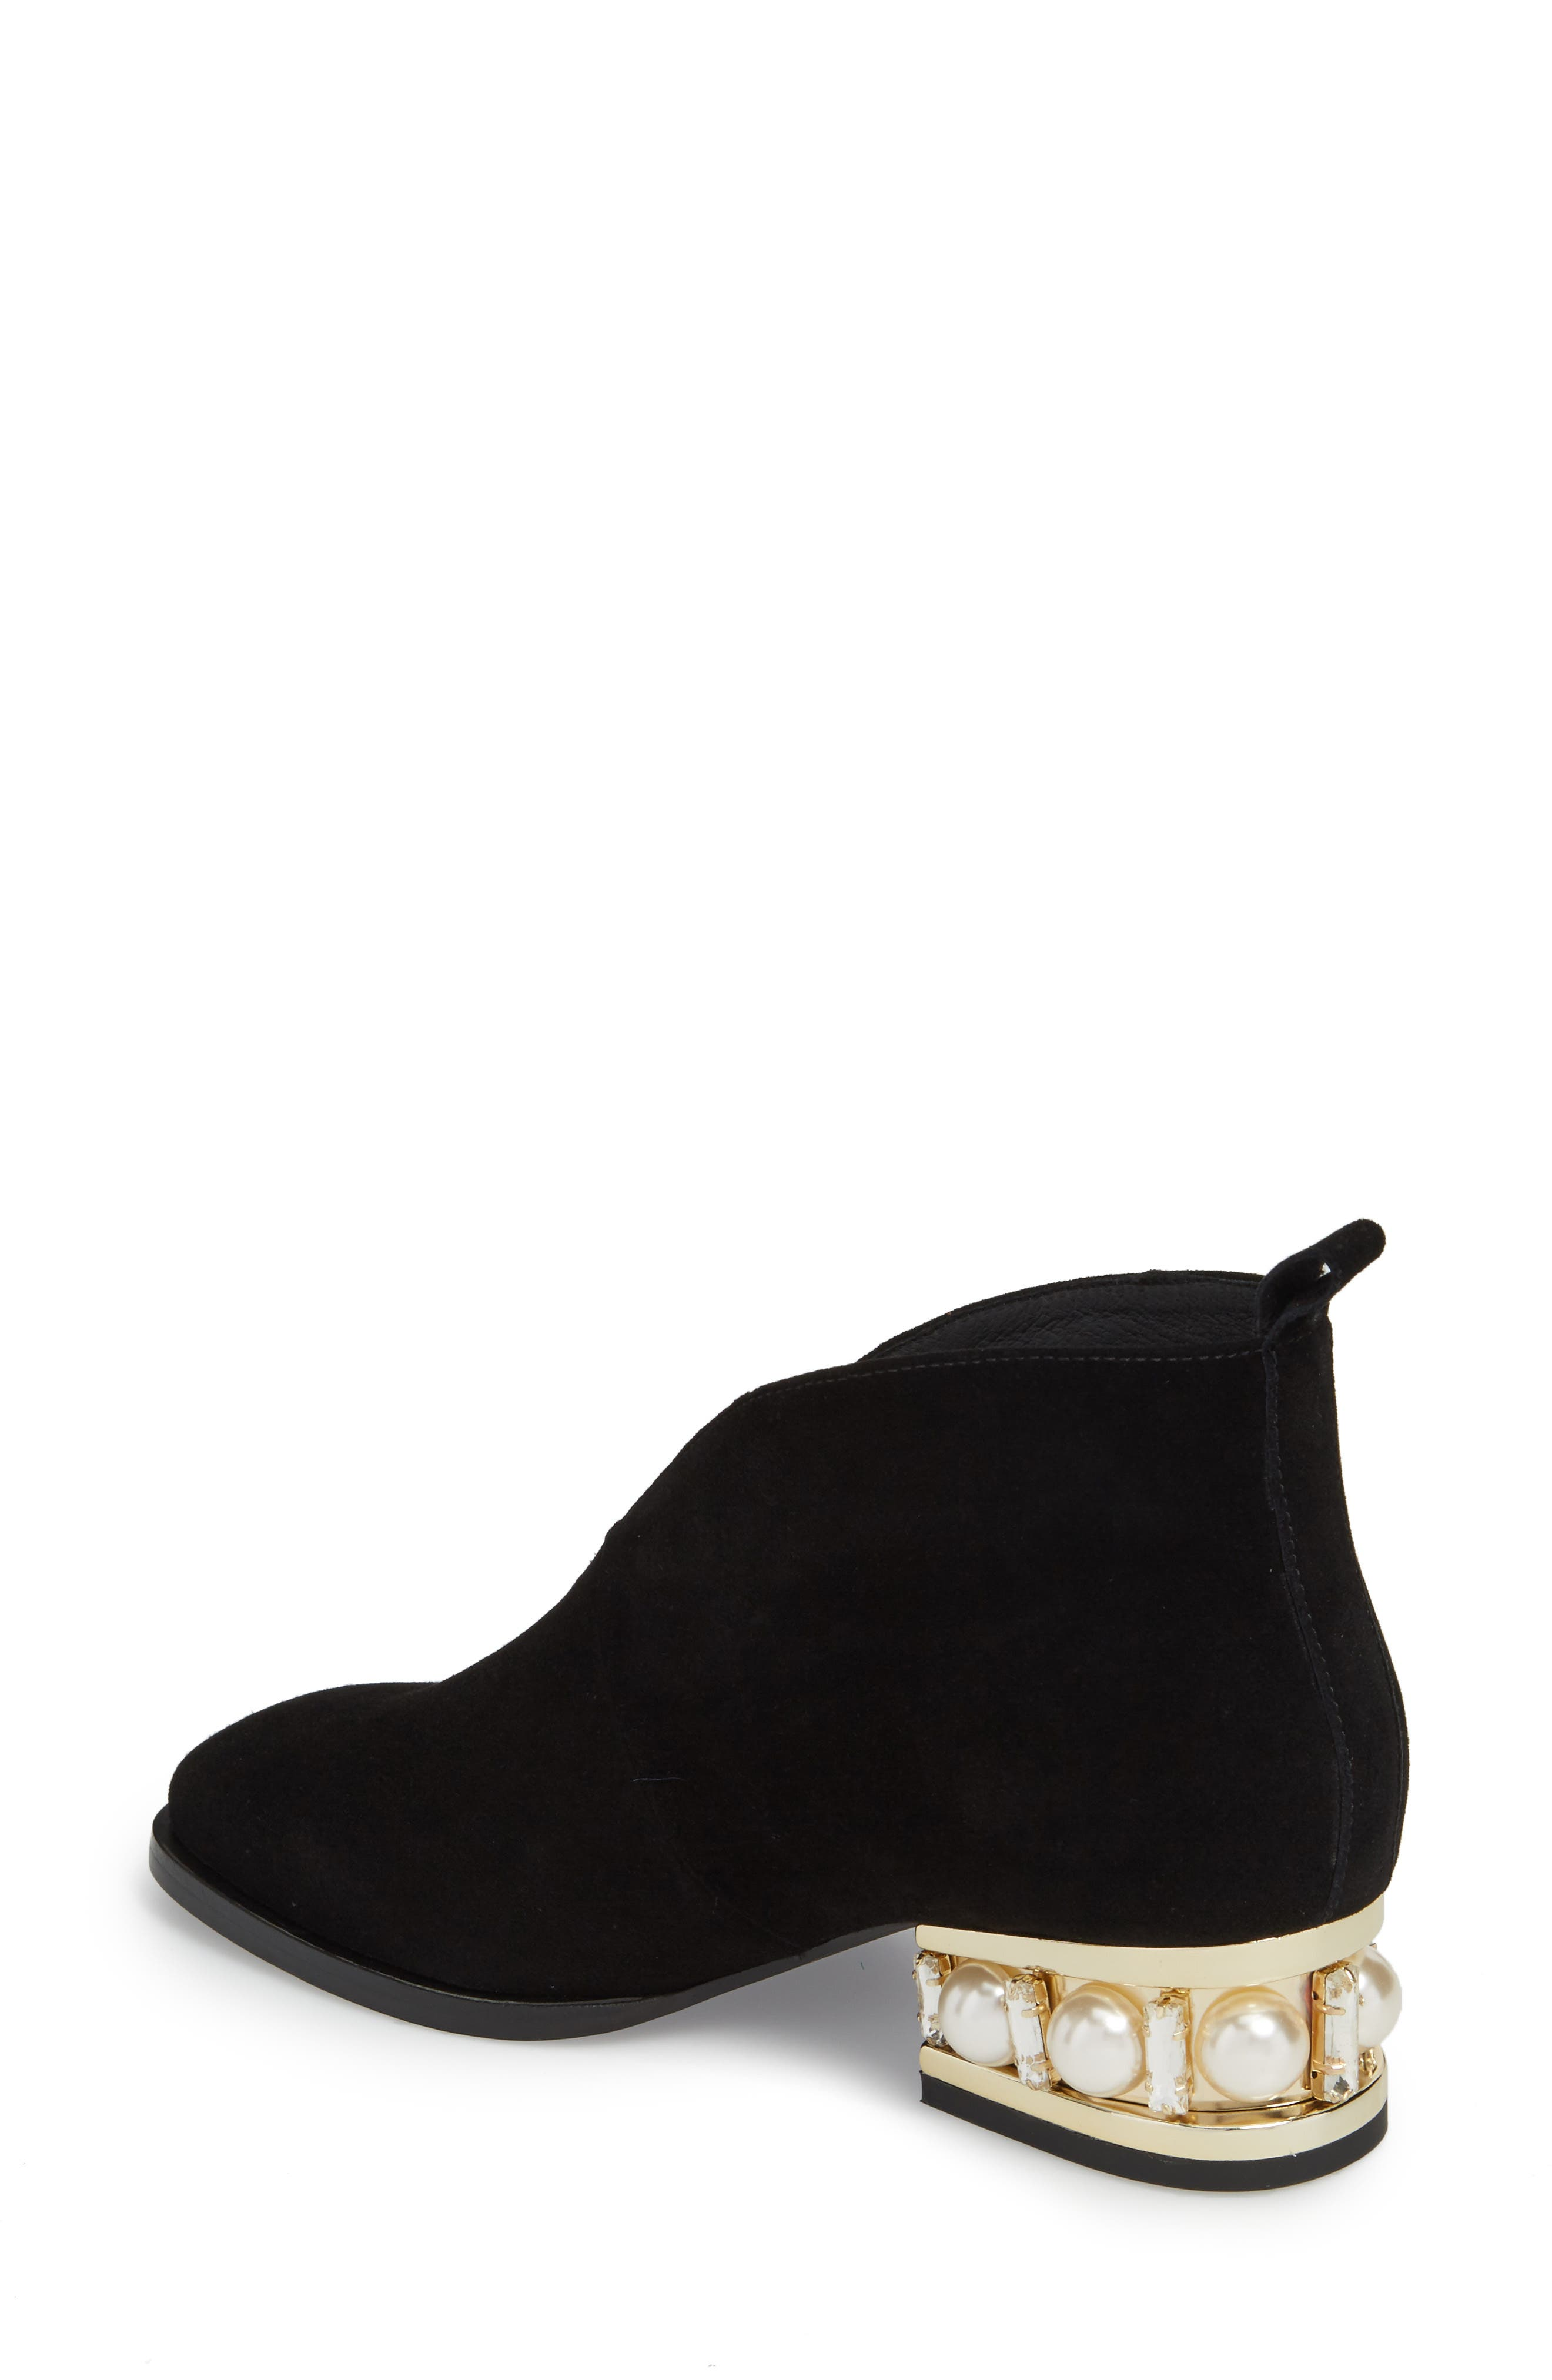 Jerman-VPJ Embellished Bootie,                             Alternate thumbnail 2, color,                             BLACK/ GOLD SUEDE